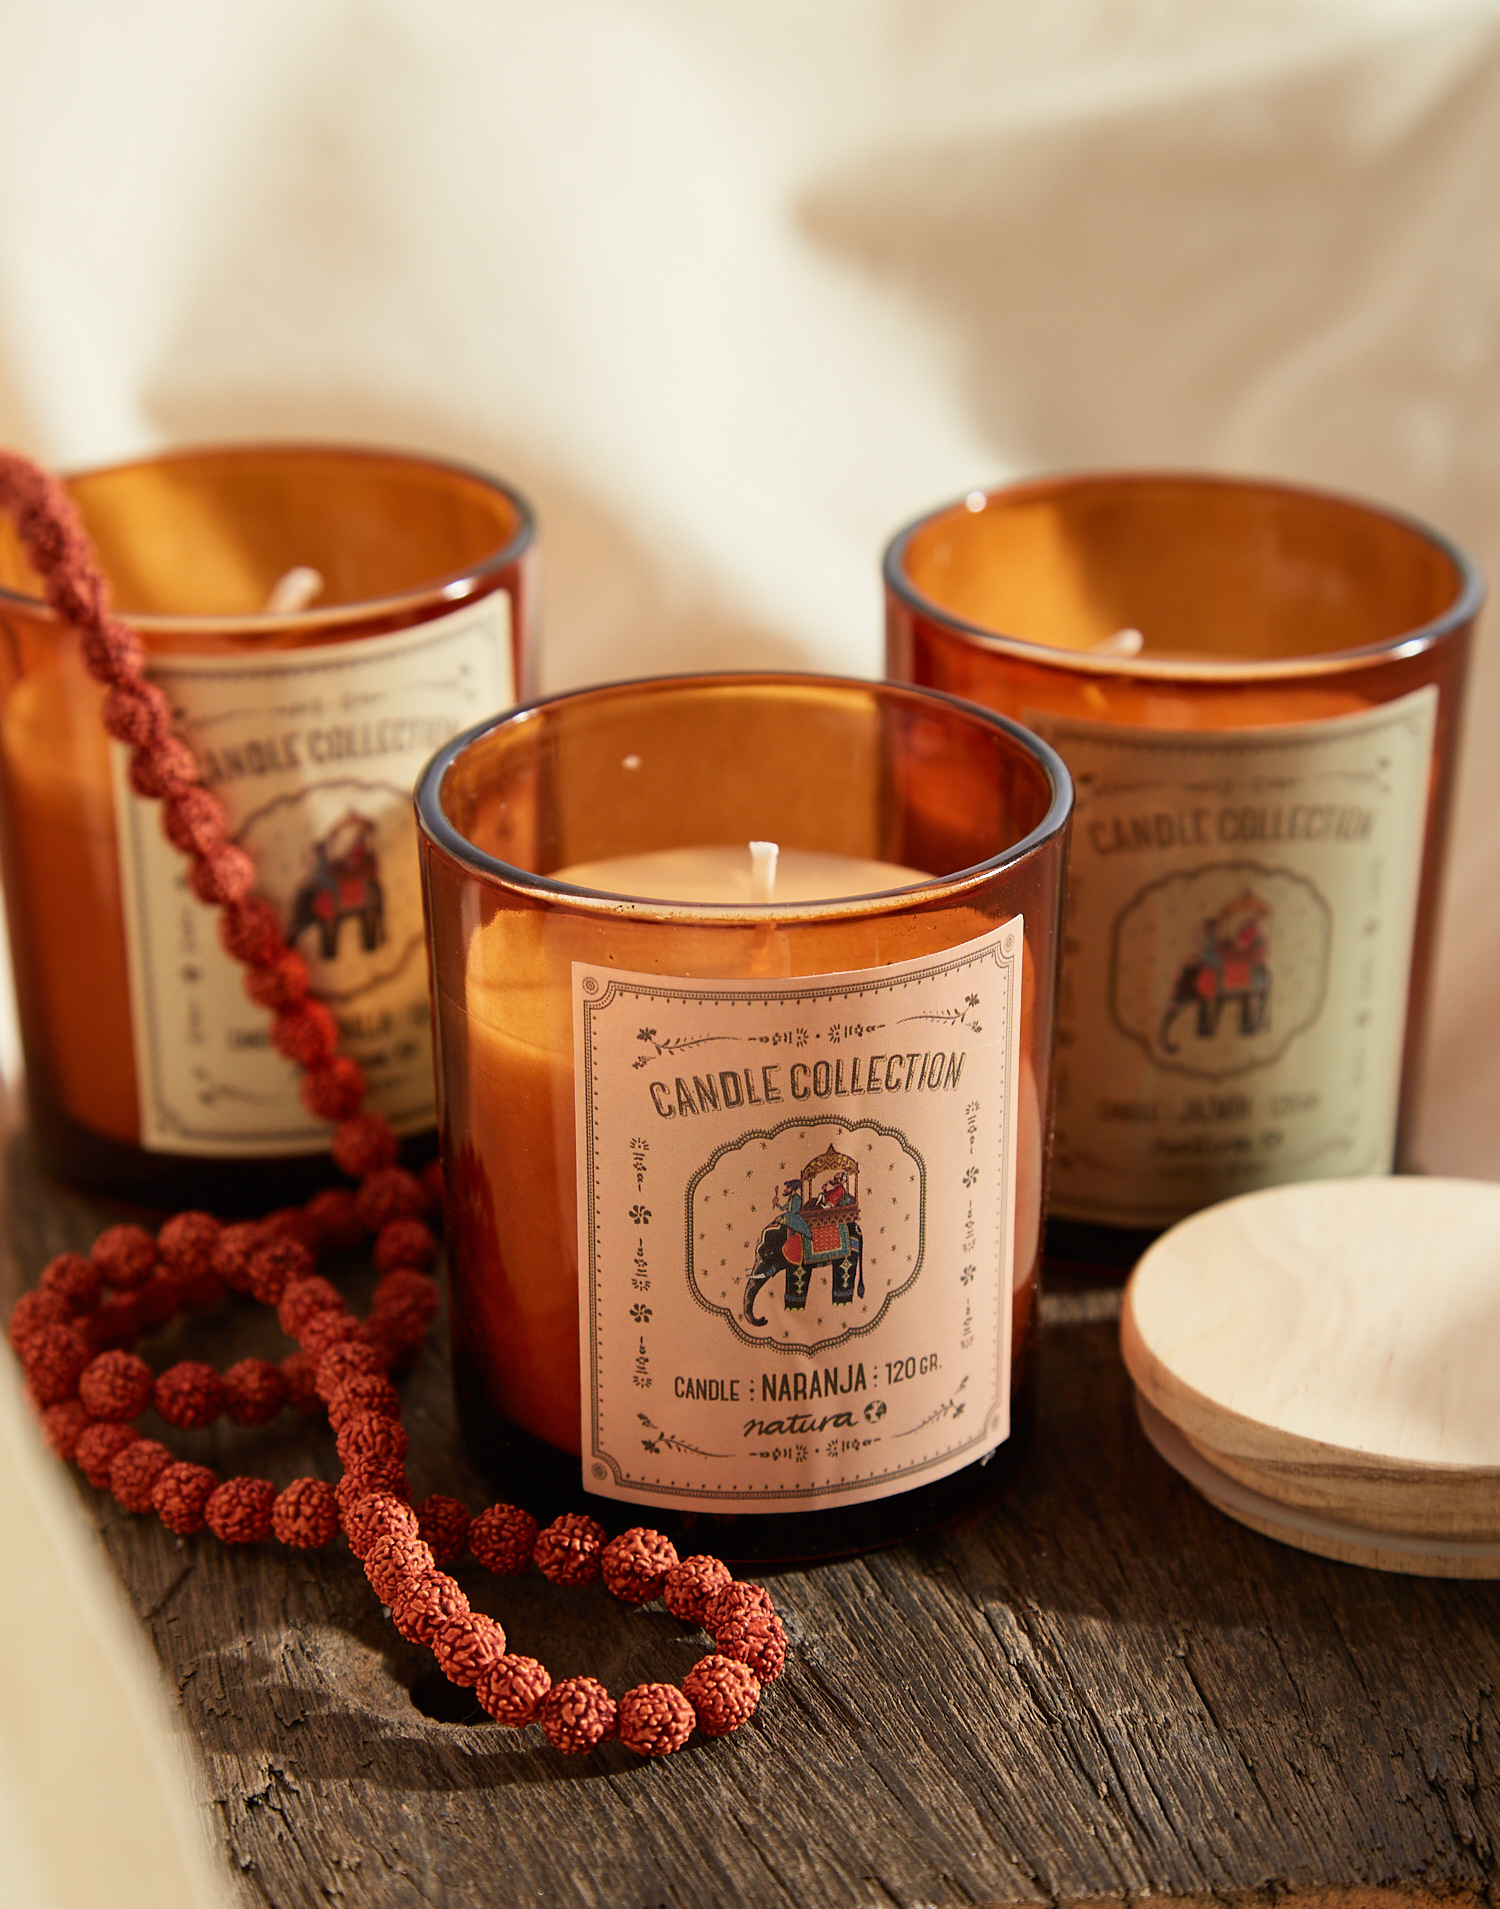 Soy wax candle 120gr